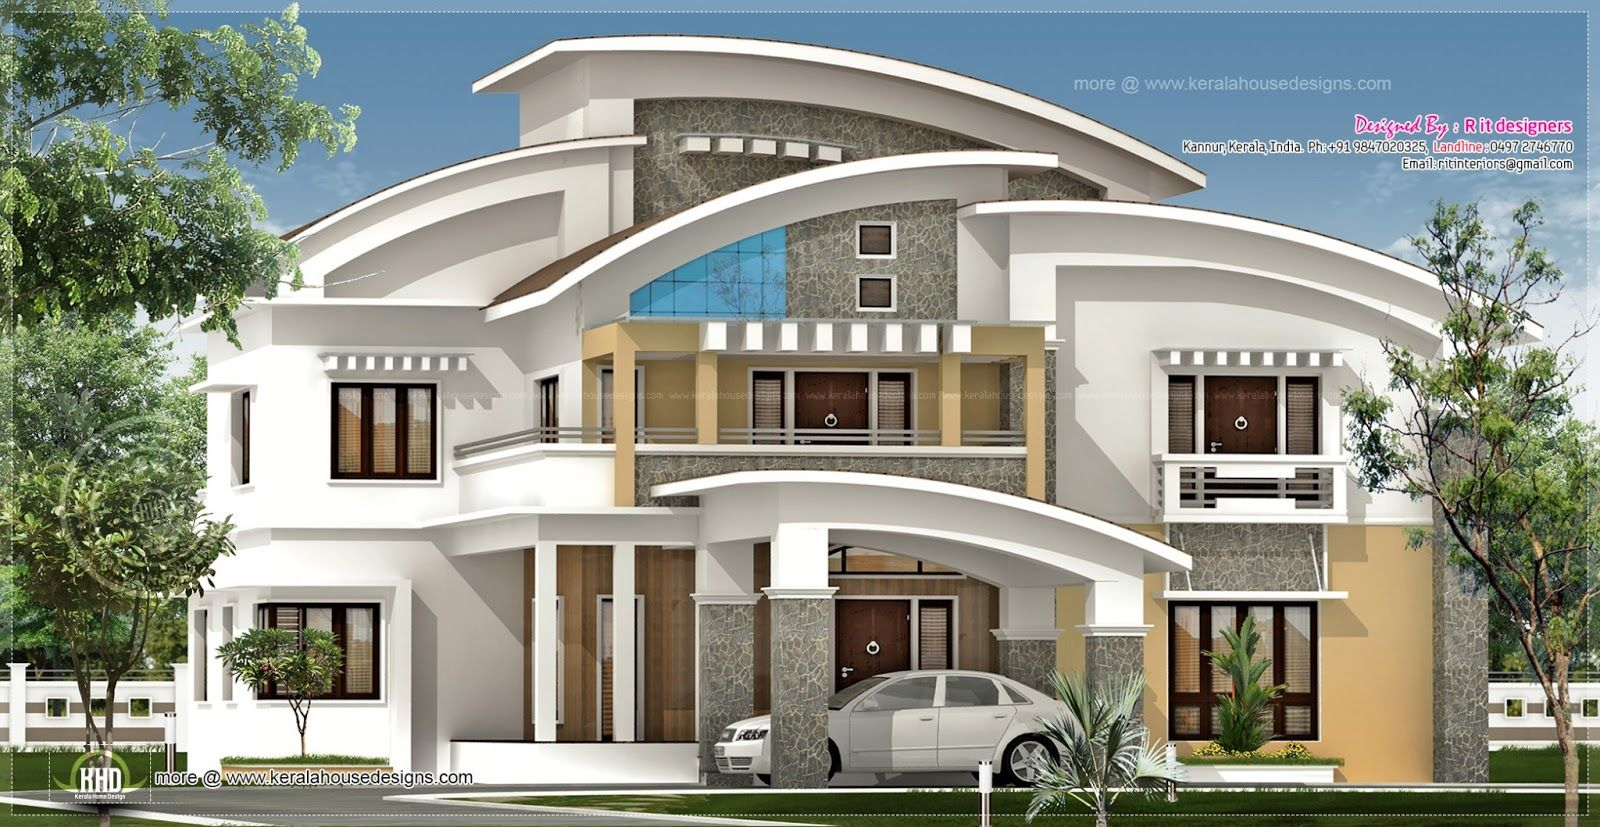 Awesome luxury homes plans 8 french country luxury home for Best front design of home